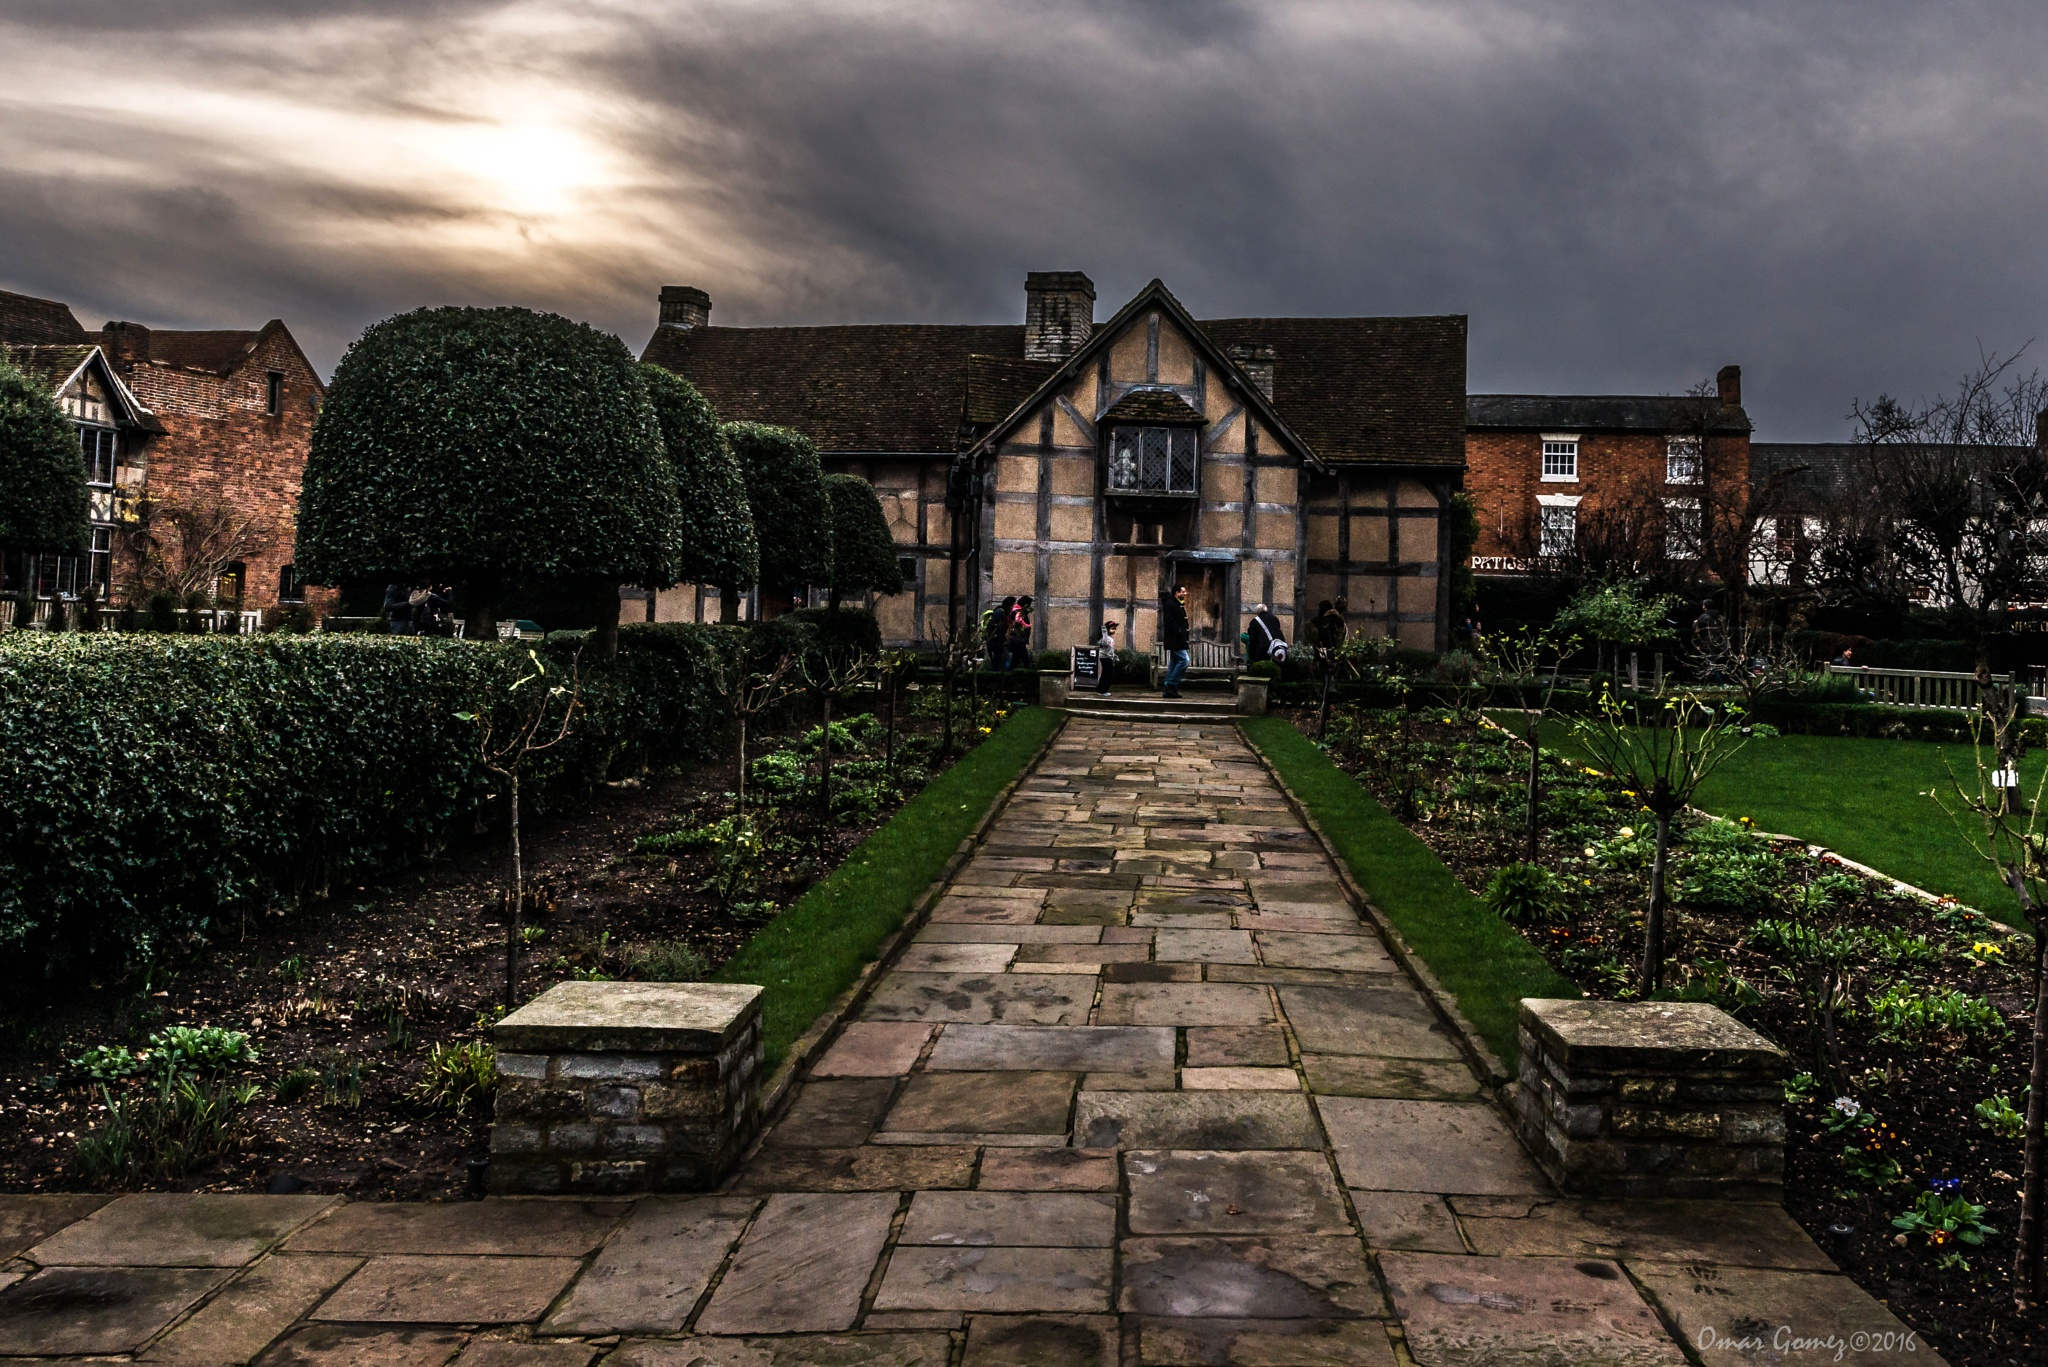 Shakespeare's House by Omar Gomez